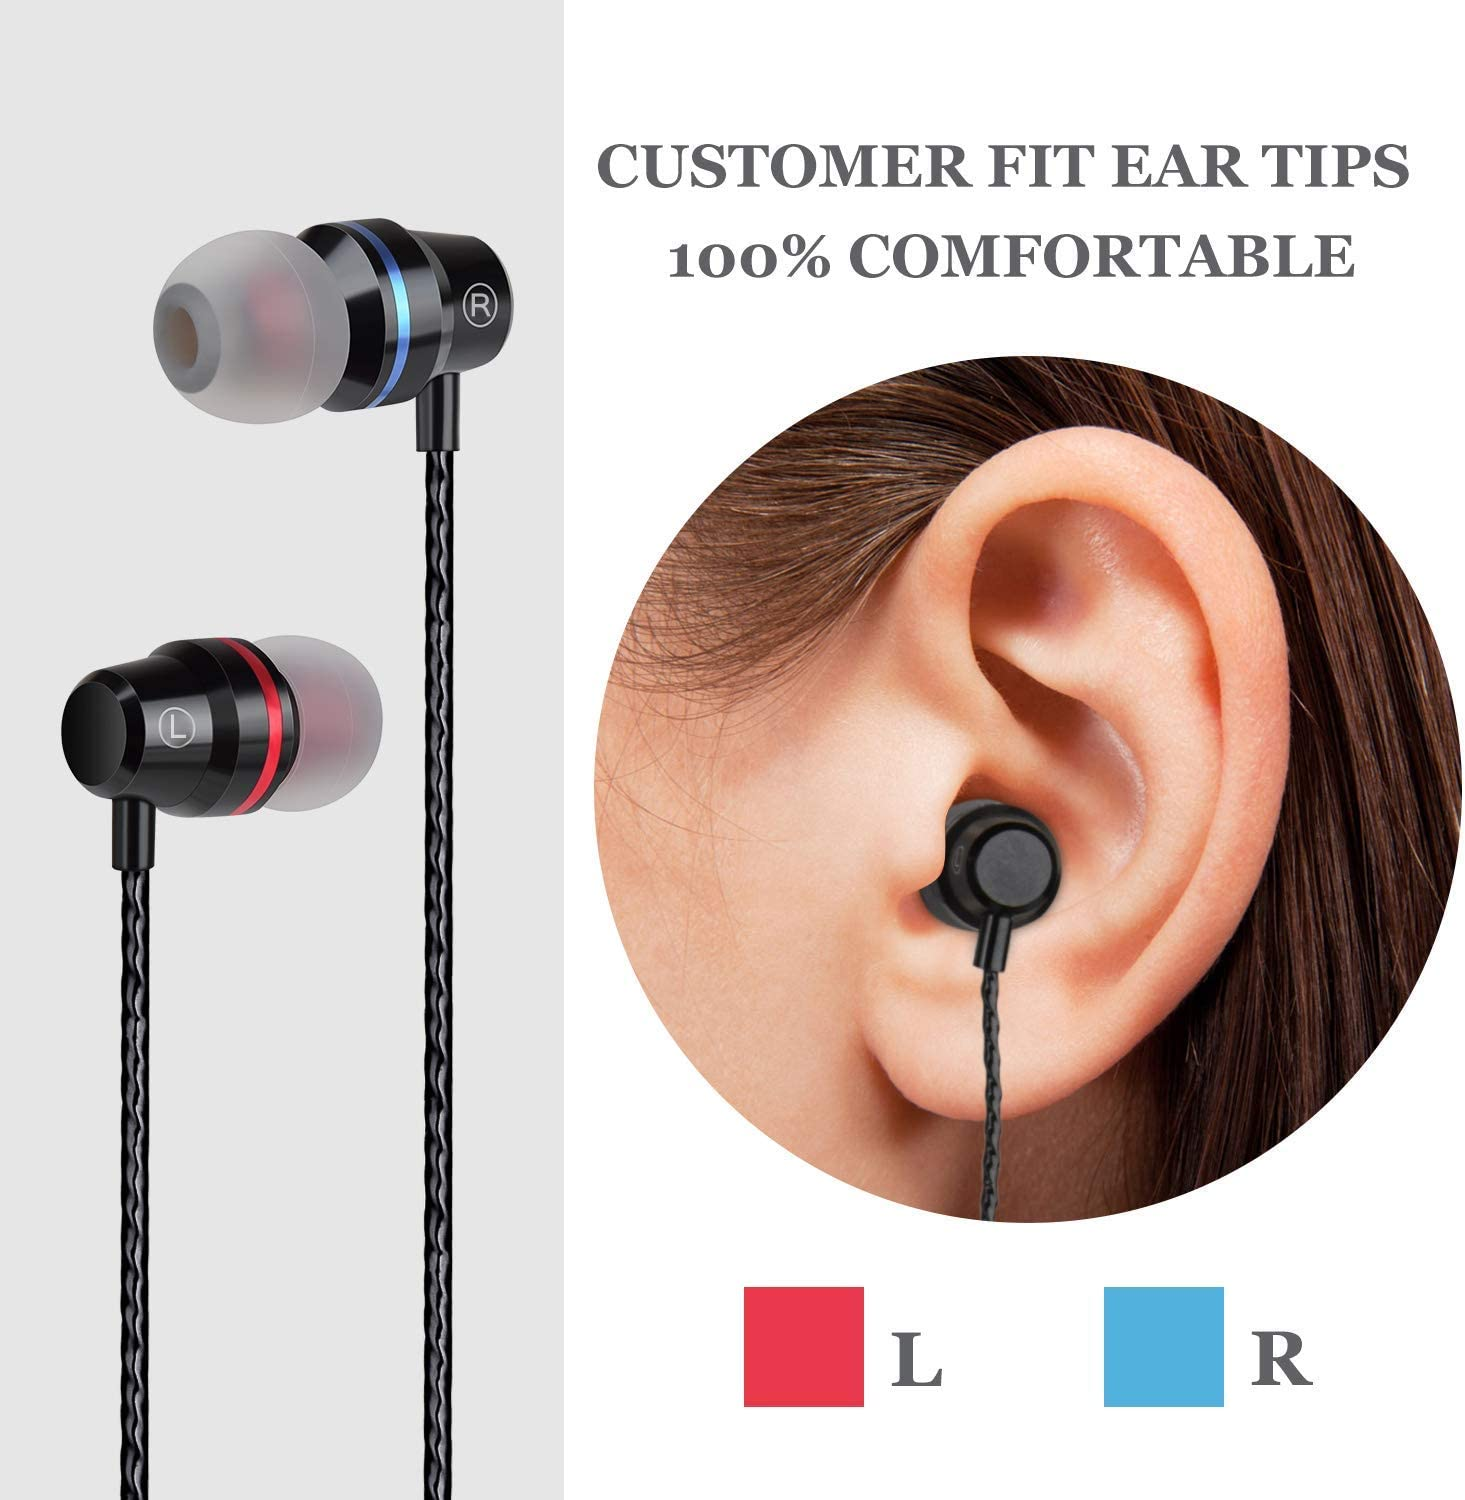 RUYIKING Earbuds Stereo Mini Headset with Mic Charging Case Mini Outdoor Portable Earphones Compatible with Most Smartphones White 020